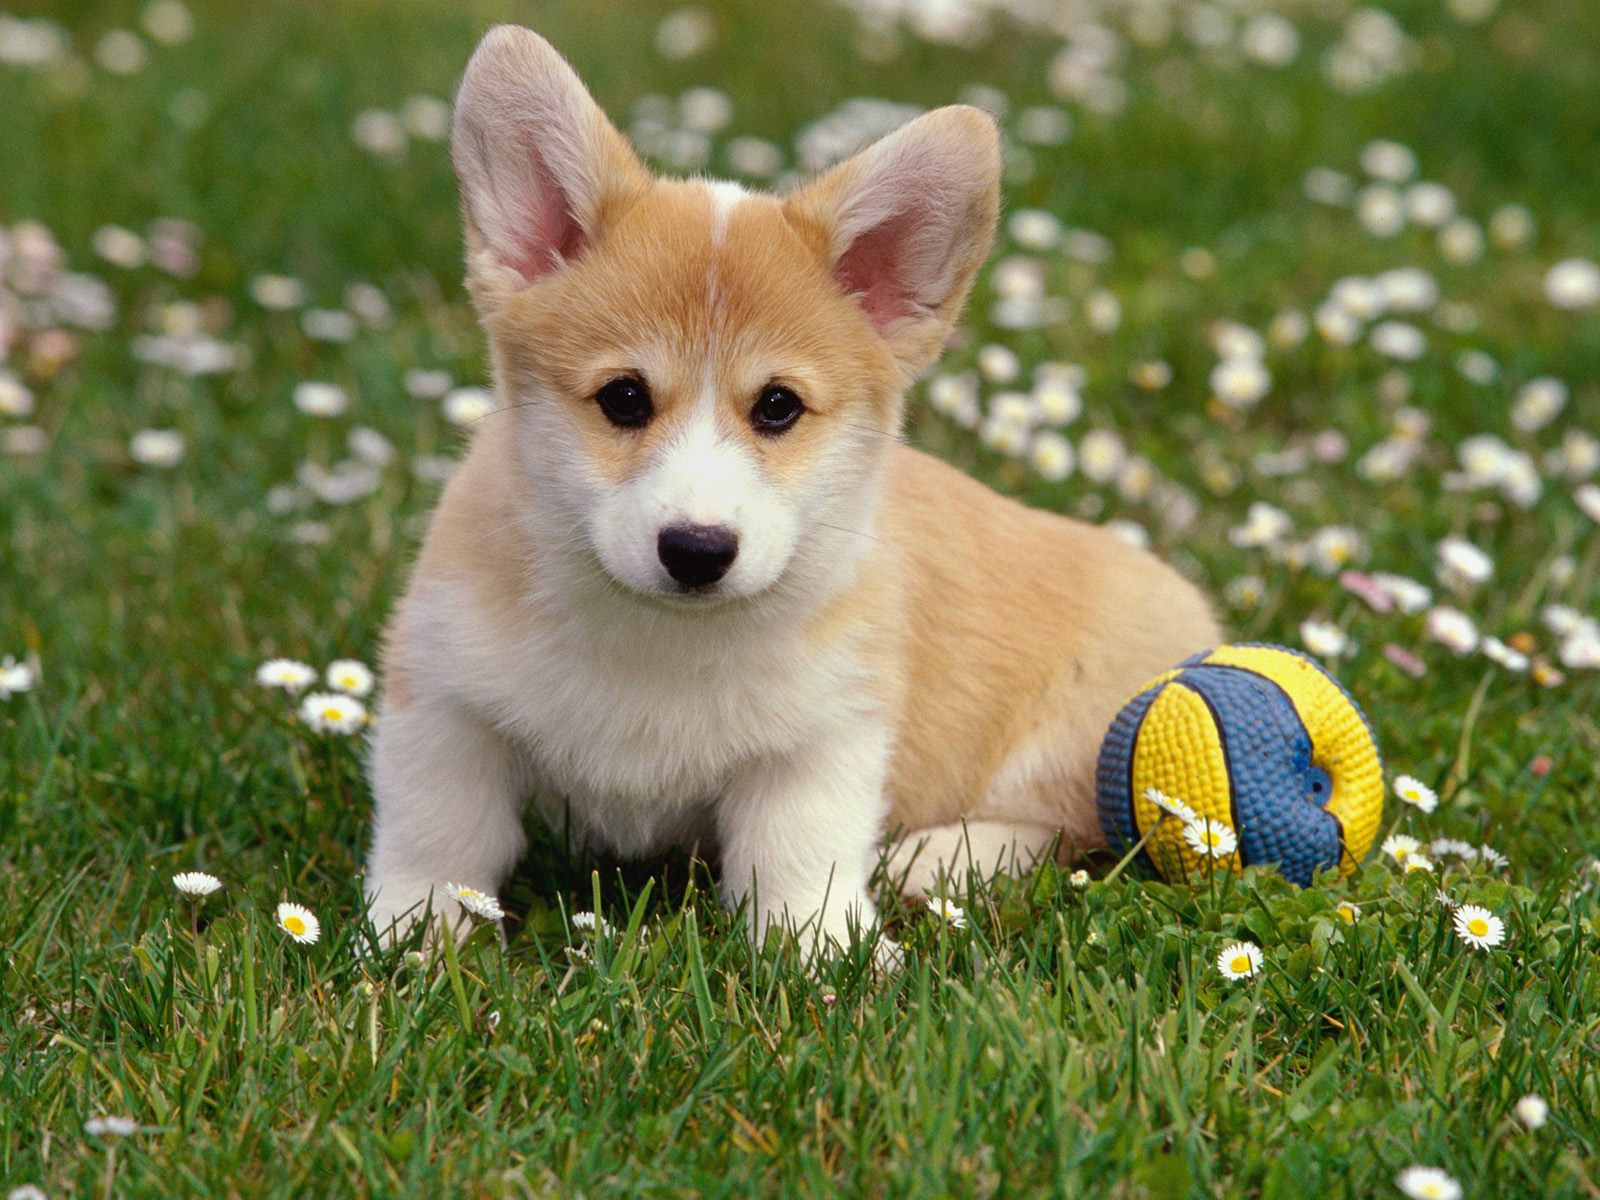 dog hd wallpapers images for dog hd dog wallpapers full hd wallpaper 1600x1200